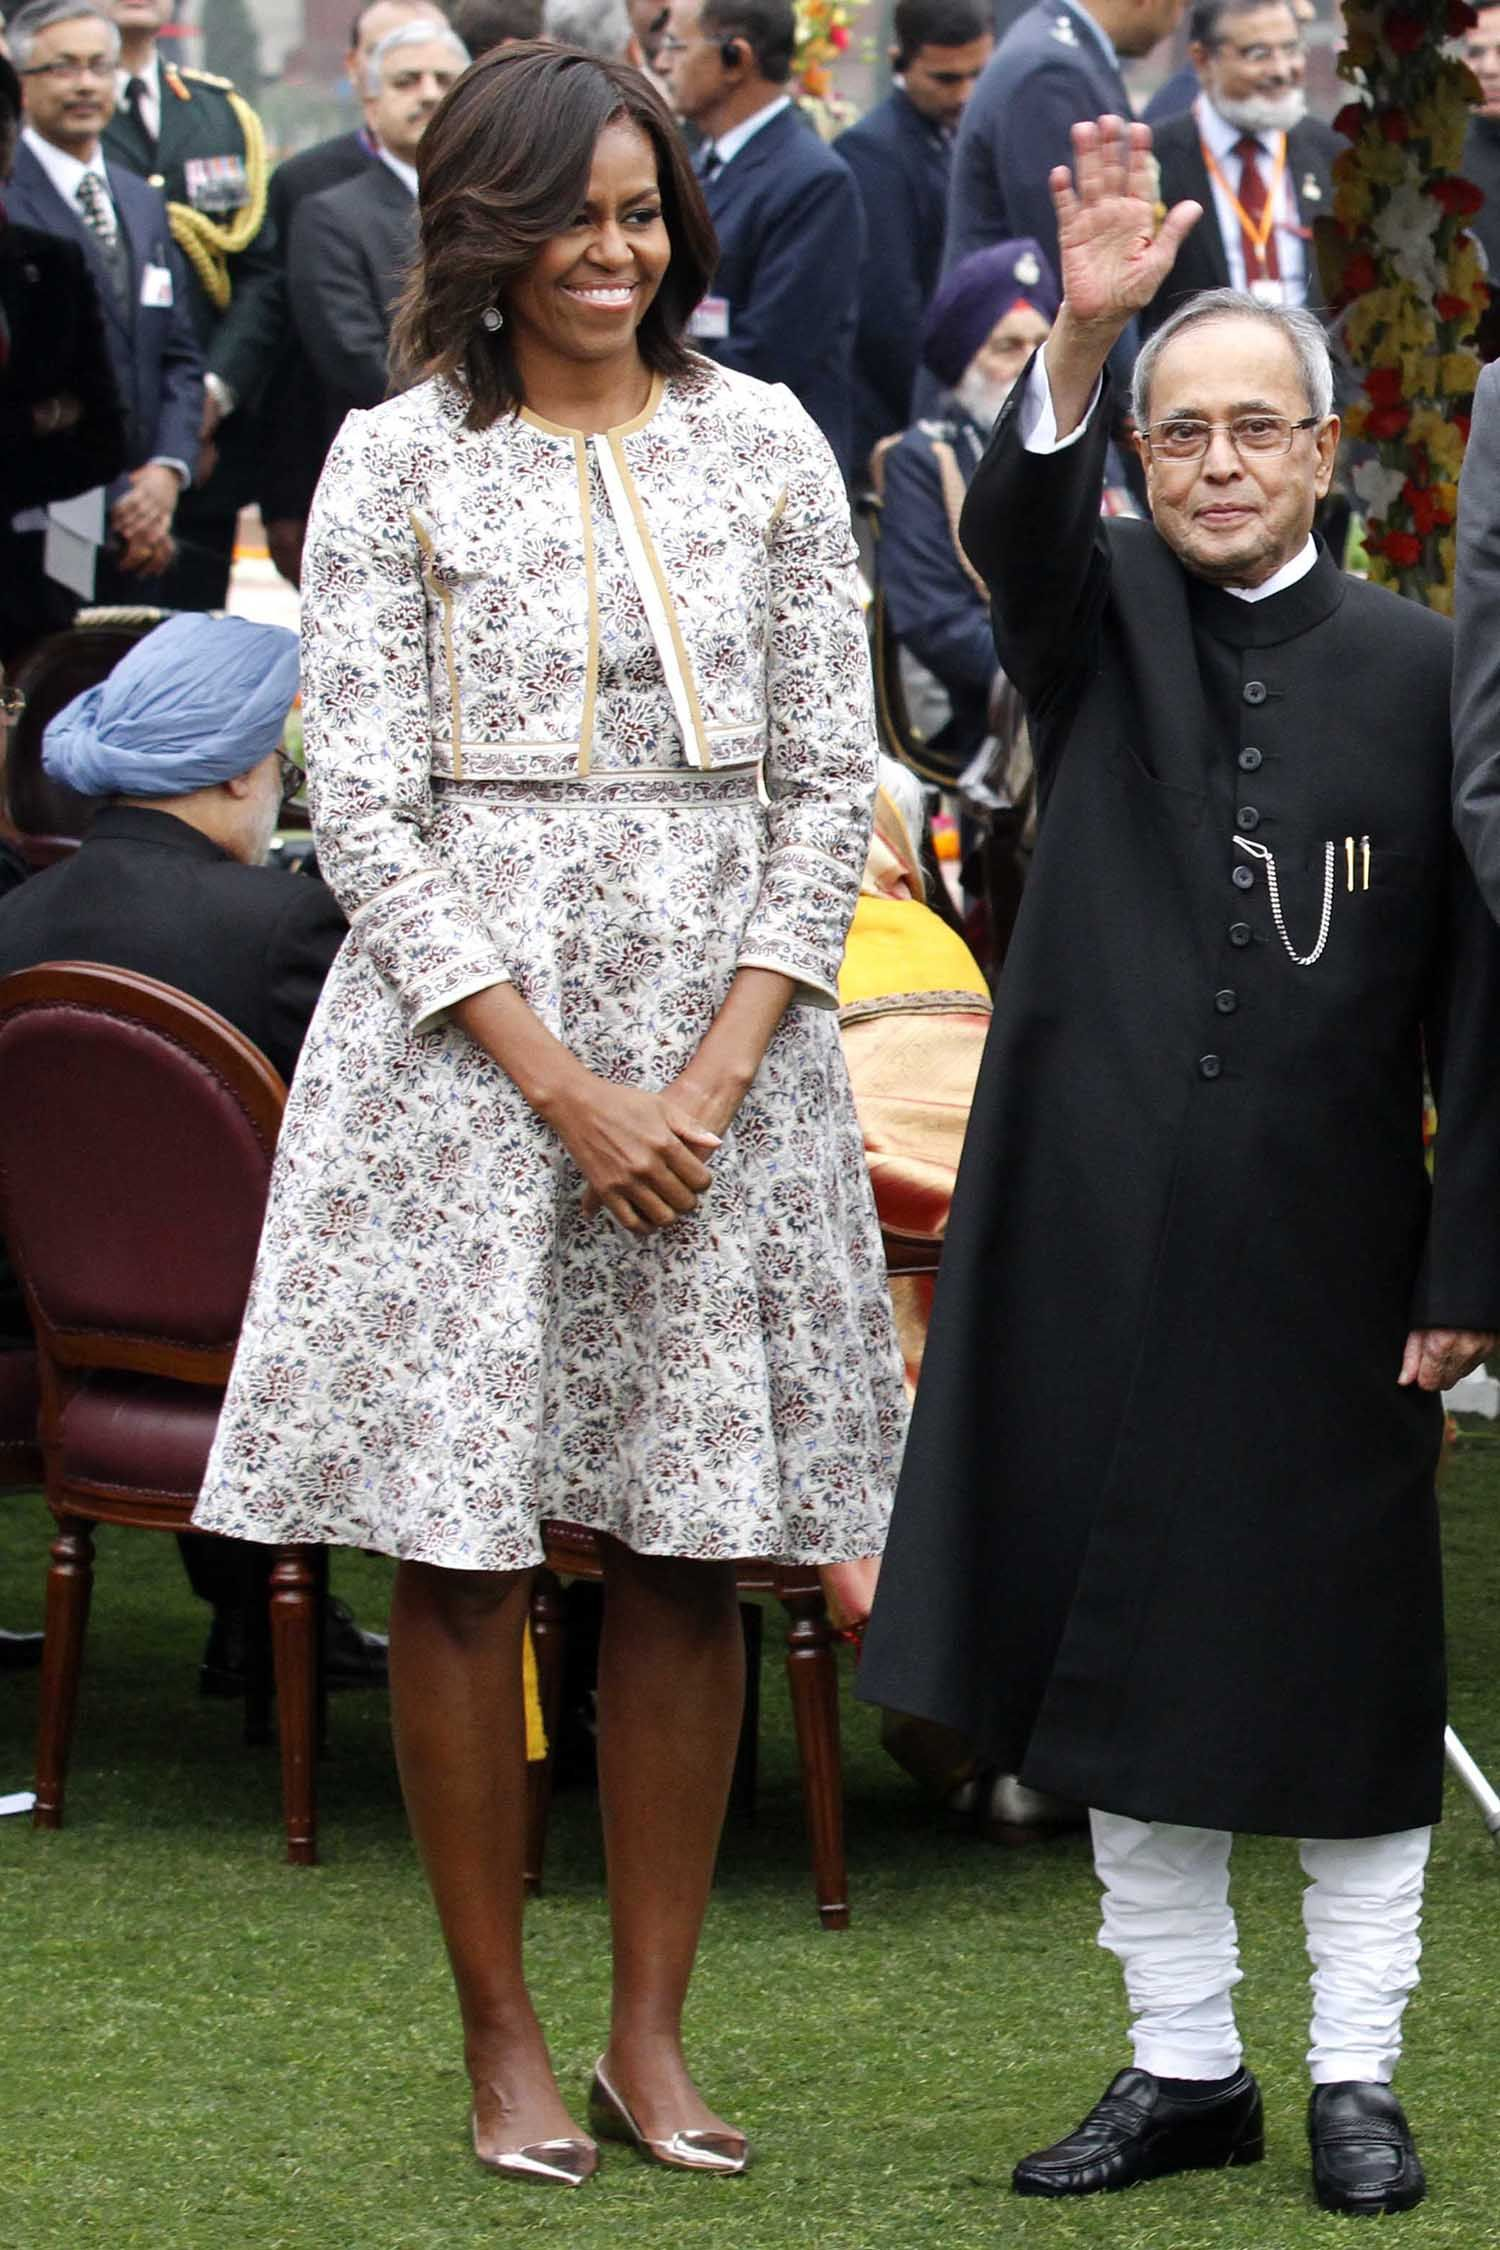 "NEW DELHI, INDIA - JANUARY 26: President Barack Obama along with his wife Michelle Obama, Prime Minister Narendra Modi, and President Pranab Mukherjee ""At Home"" Reception with several hundred political and cultural figures at the Rashtrapati Bhavan Presidential Palace on January 26, 2015 in New Delhi, India. Obama is on a three-day visit to India, who was the Chief Guest at Republic Day celebrations on the invite of Prime Minister Narendra Modi. He announced that the U.S. and India have made progress on civilian nuclear trade. He said the countries had agreed to more cooperation in other areas as well, including defense and climate change. (Photo by Virendra Singh Gosain/Hindustan Times via Getty Images)"